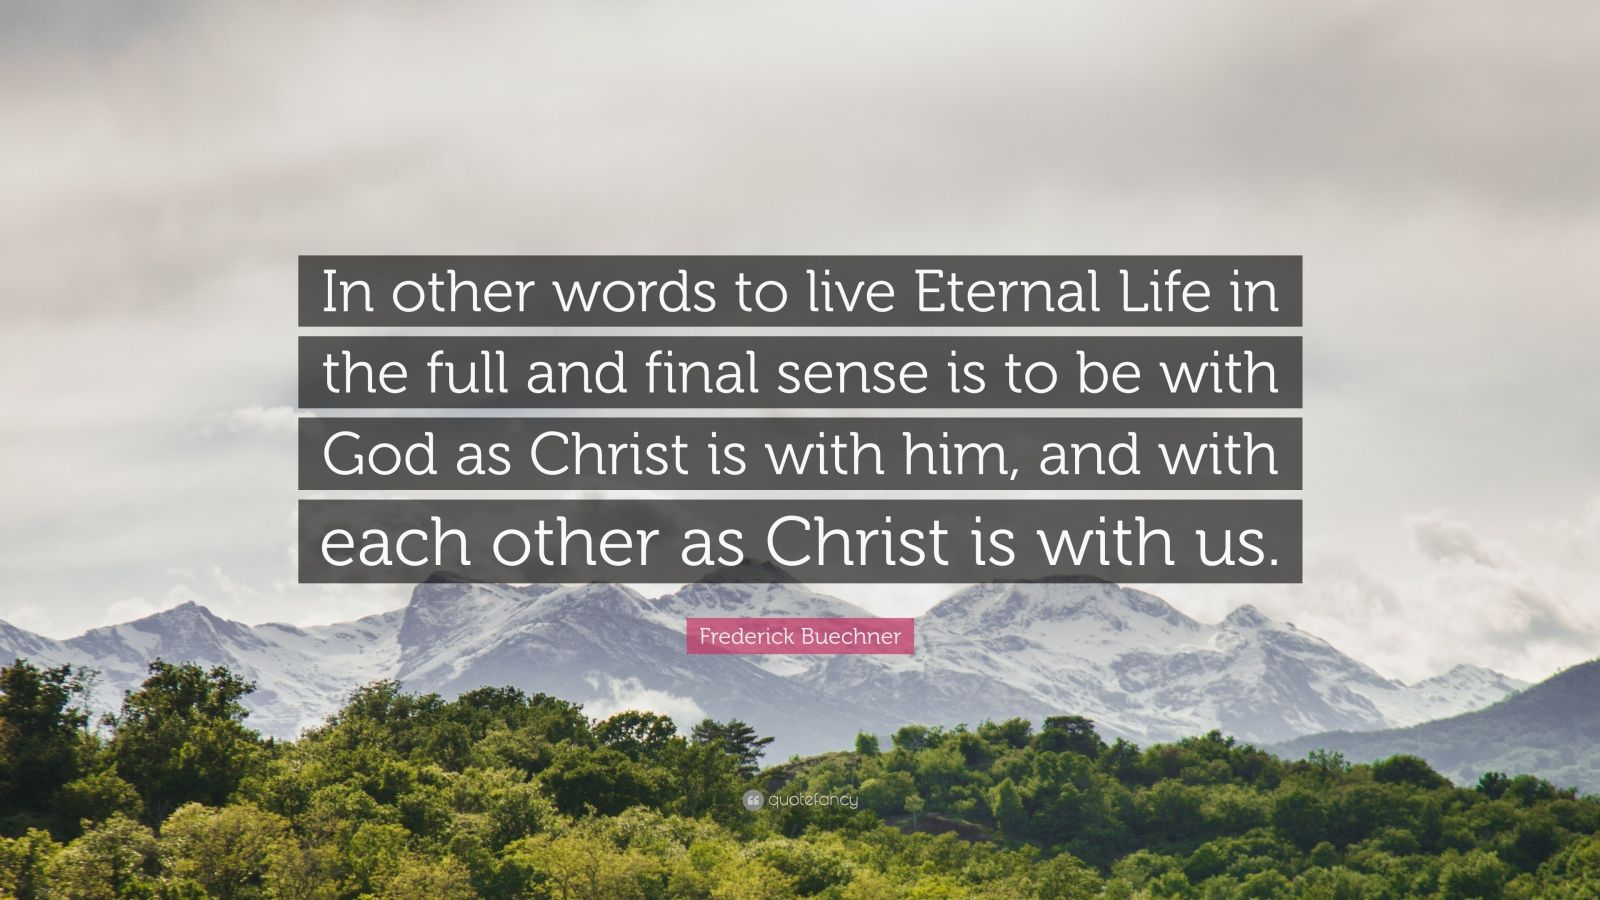 frederick buechner quote in other words to live eternal